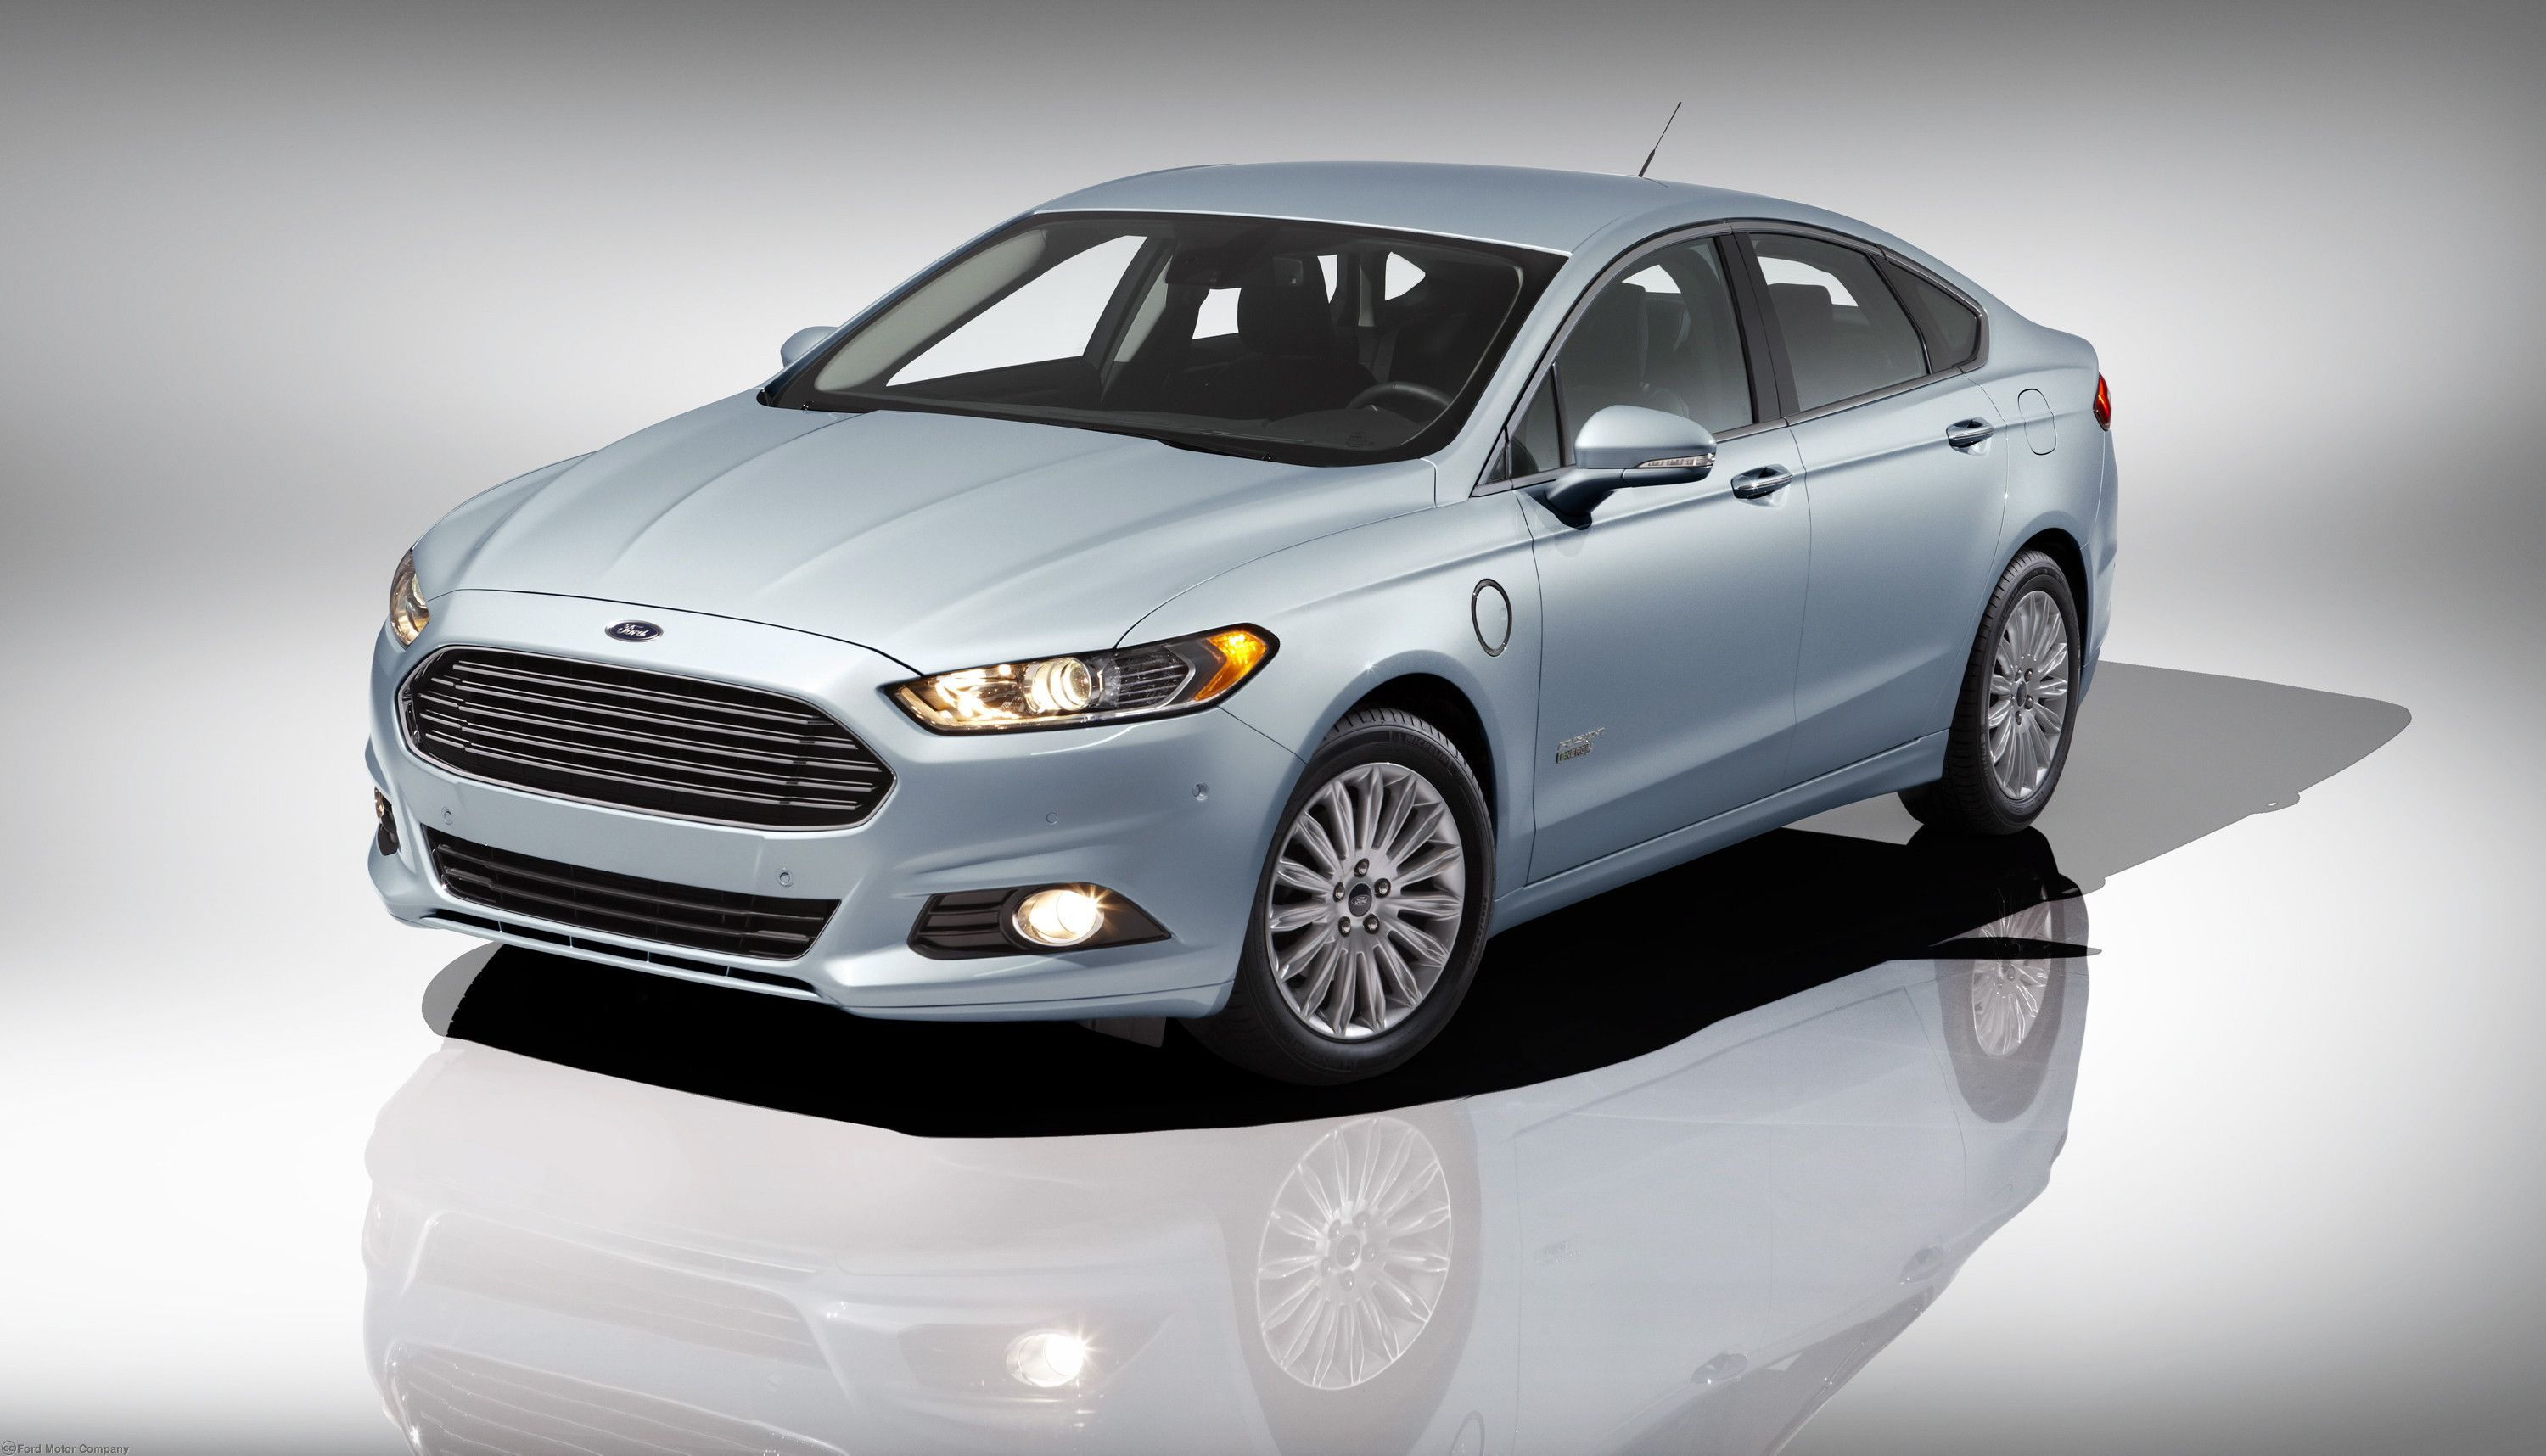 Ford Fusion Hybrid Best Everyday Ride Winner In The Viv Green